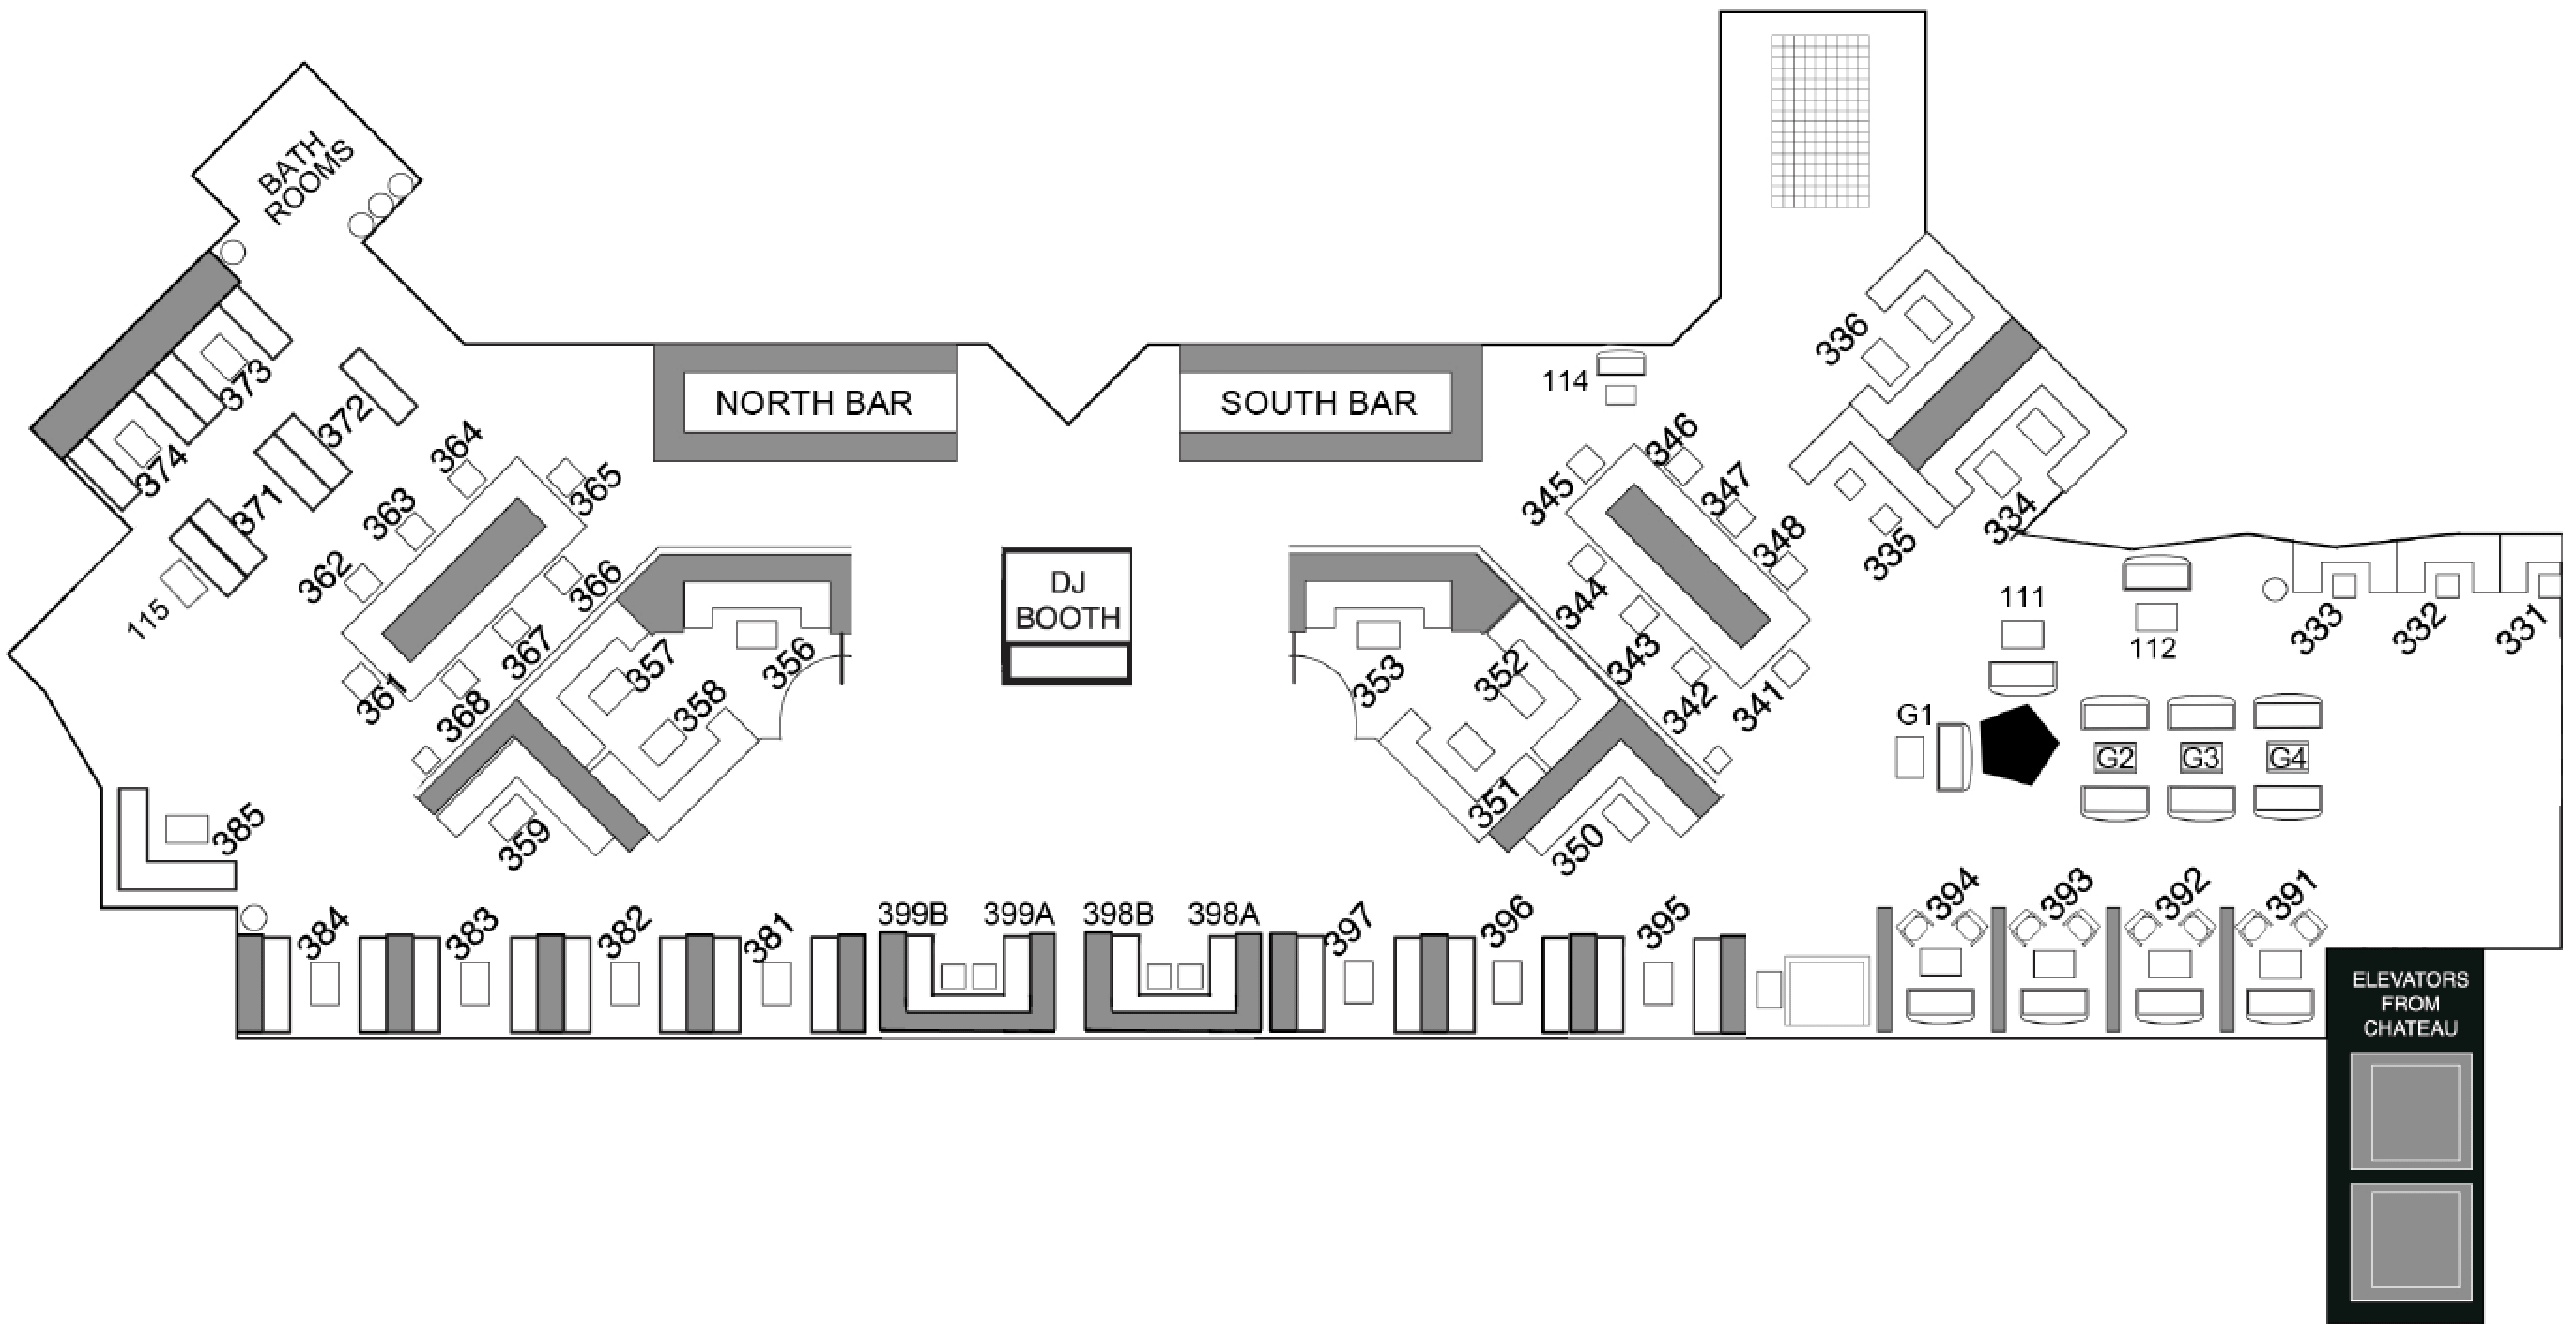 Chateau Nightclub map